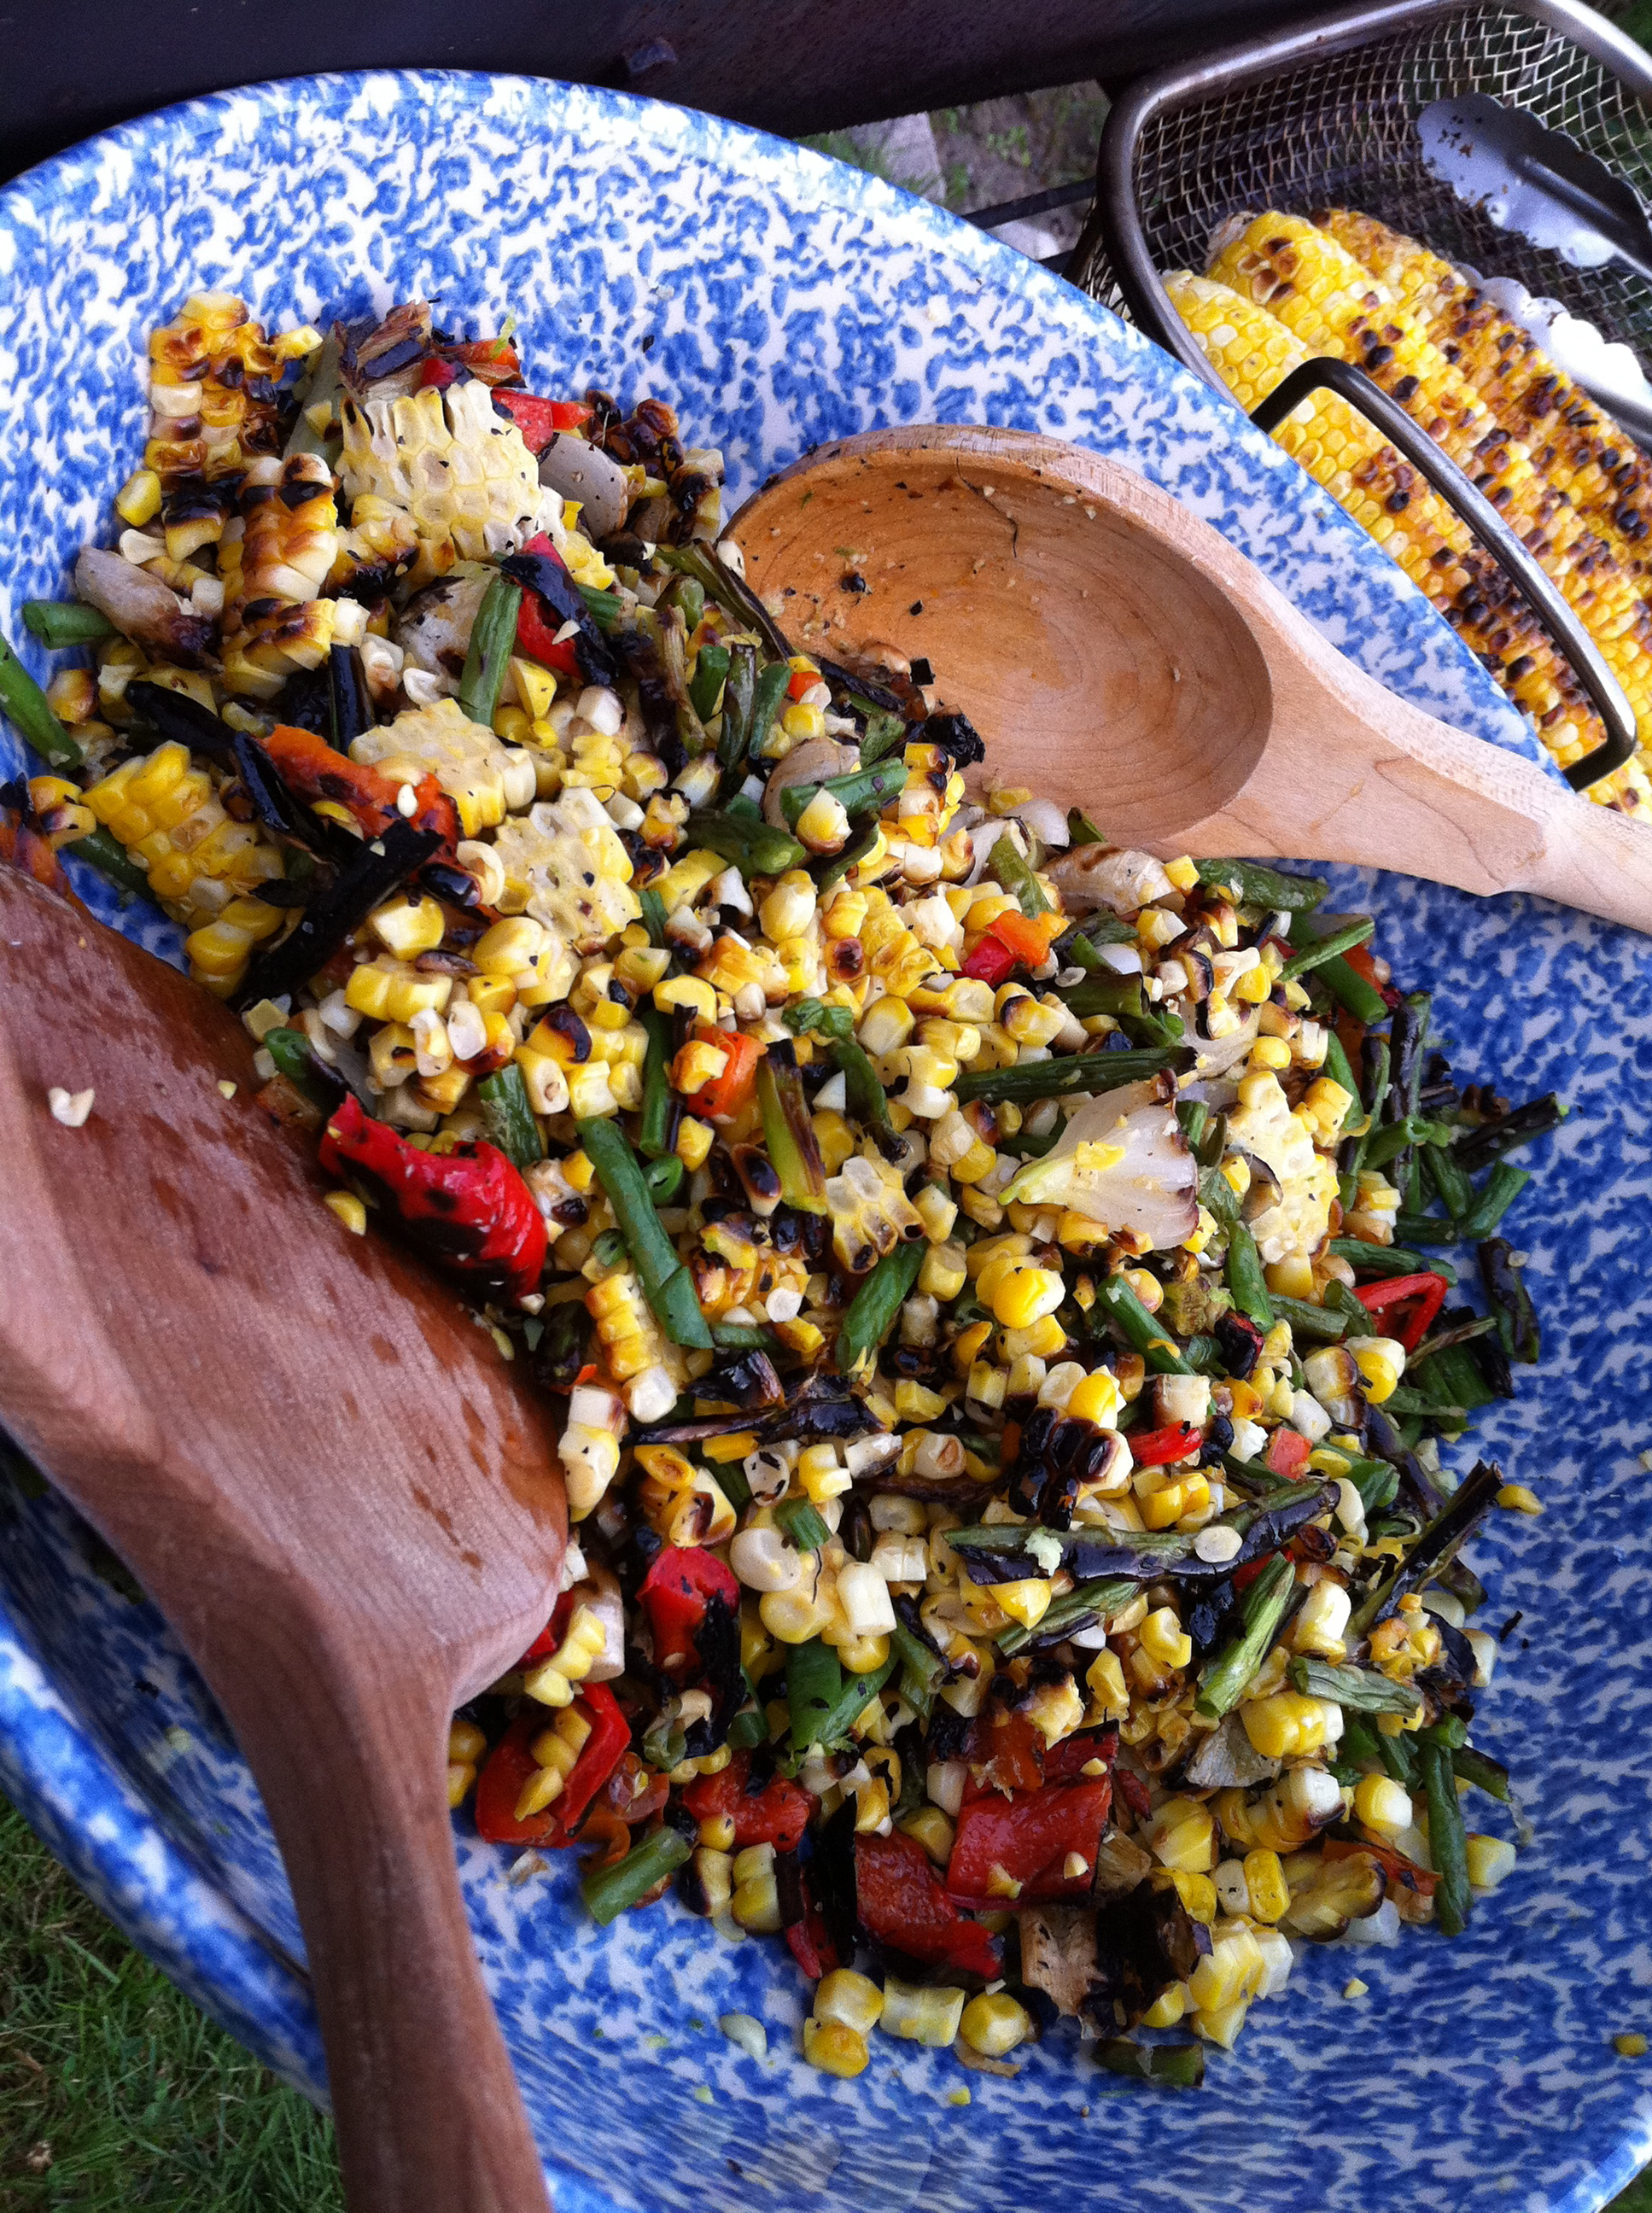 Grilled vegetables with corn, sweet peppers, bush beans, scallions and jalepeno peppers